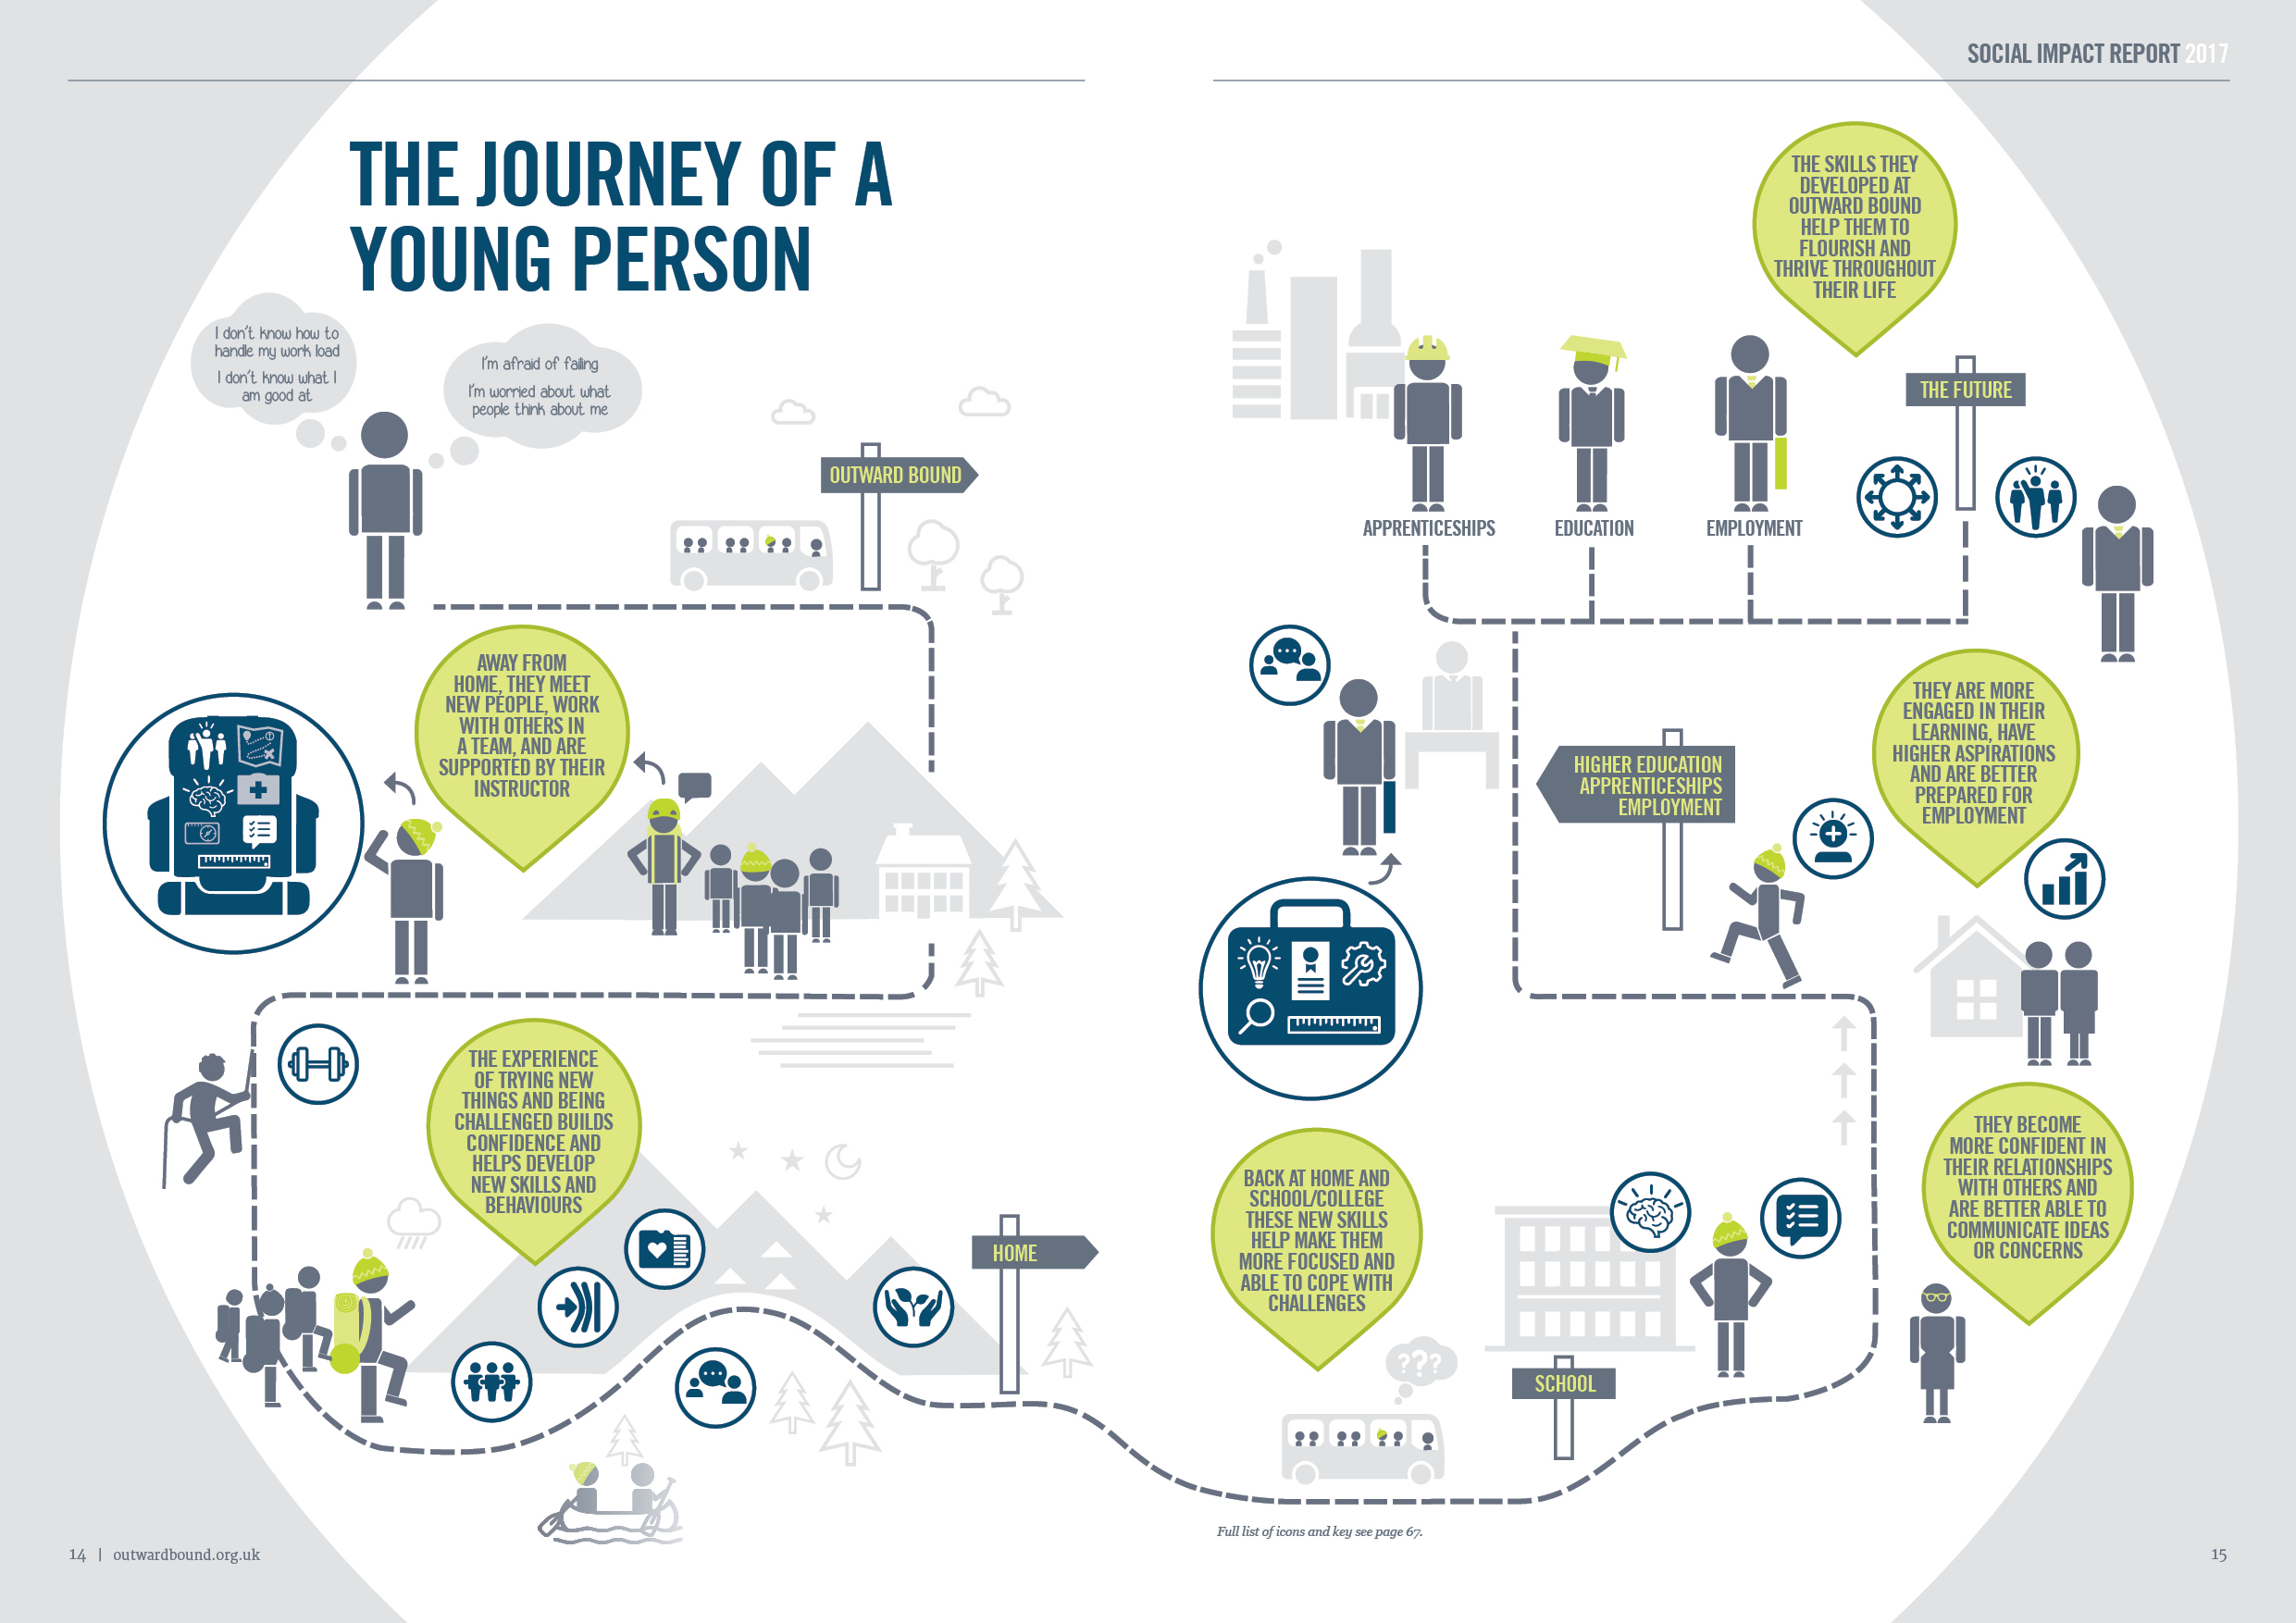 The Journey of a Young Person